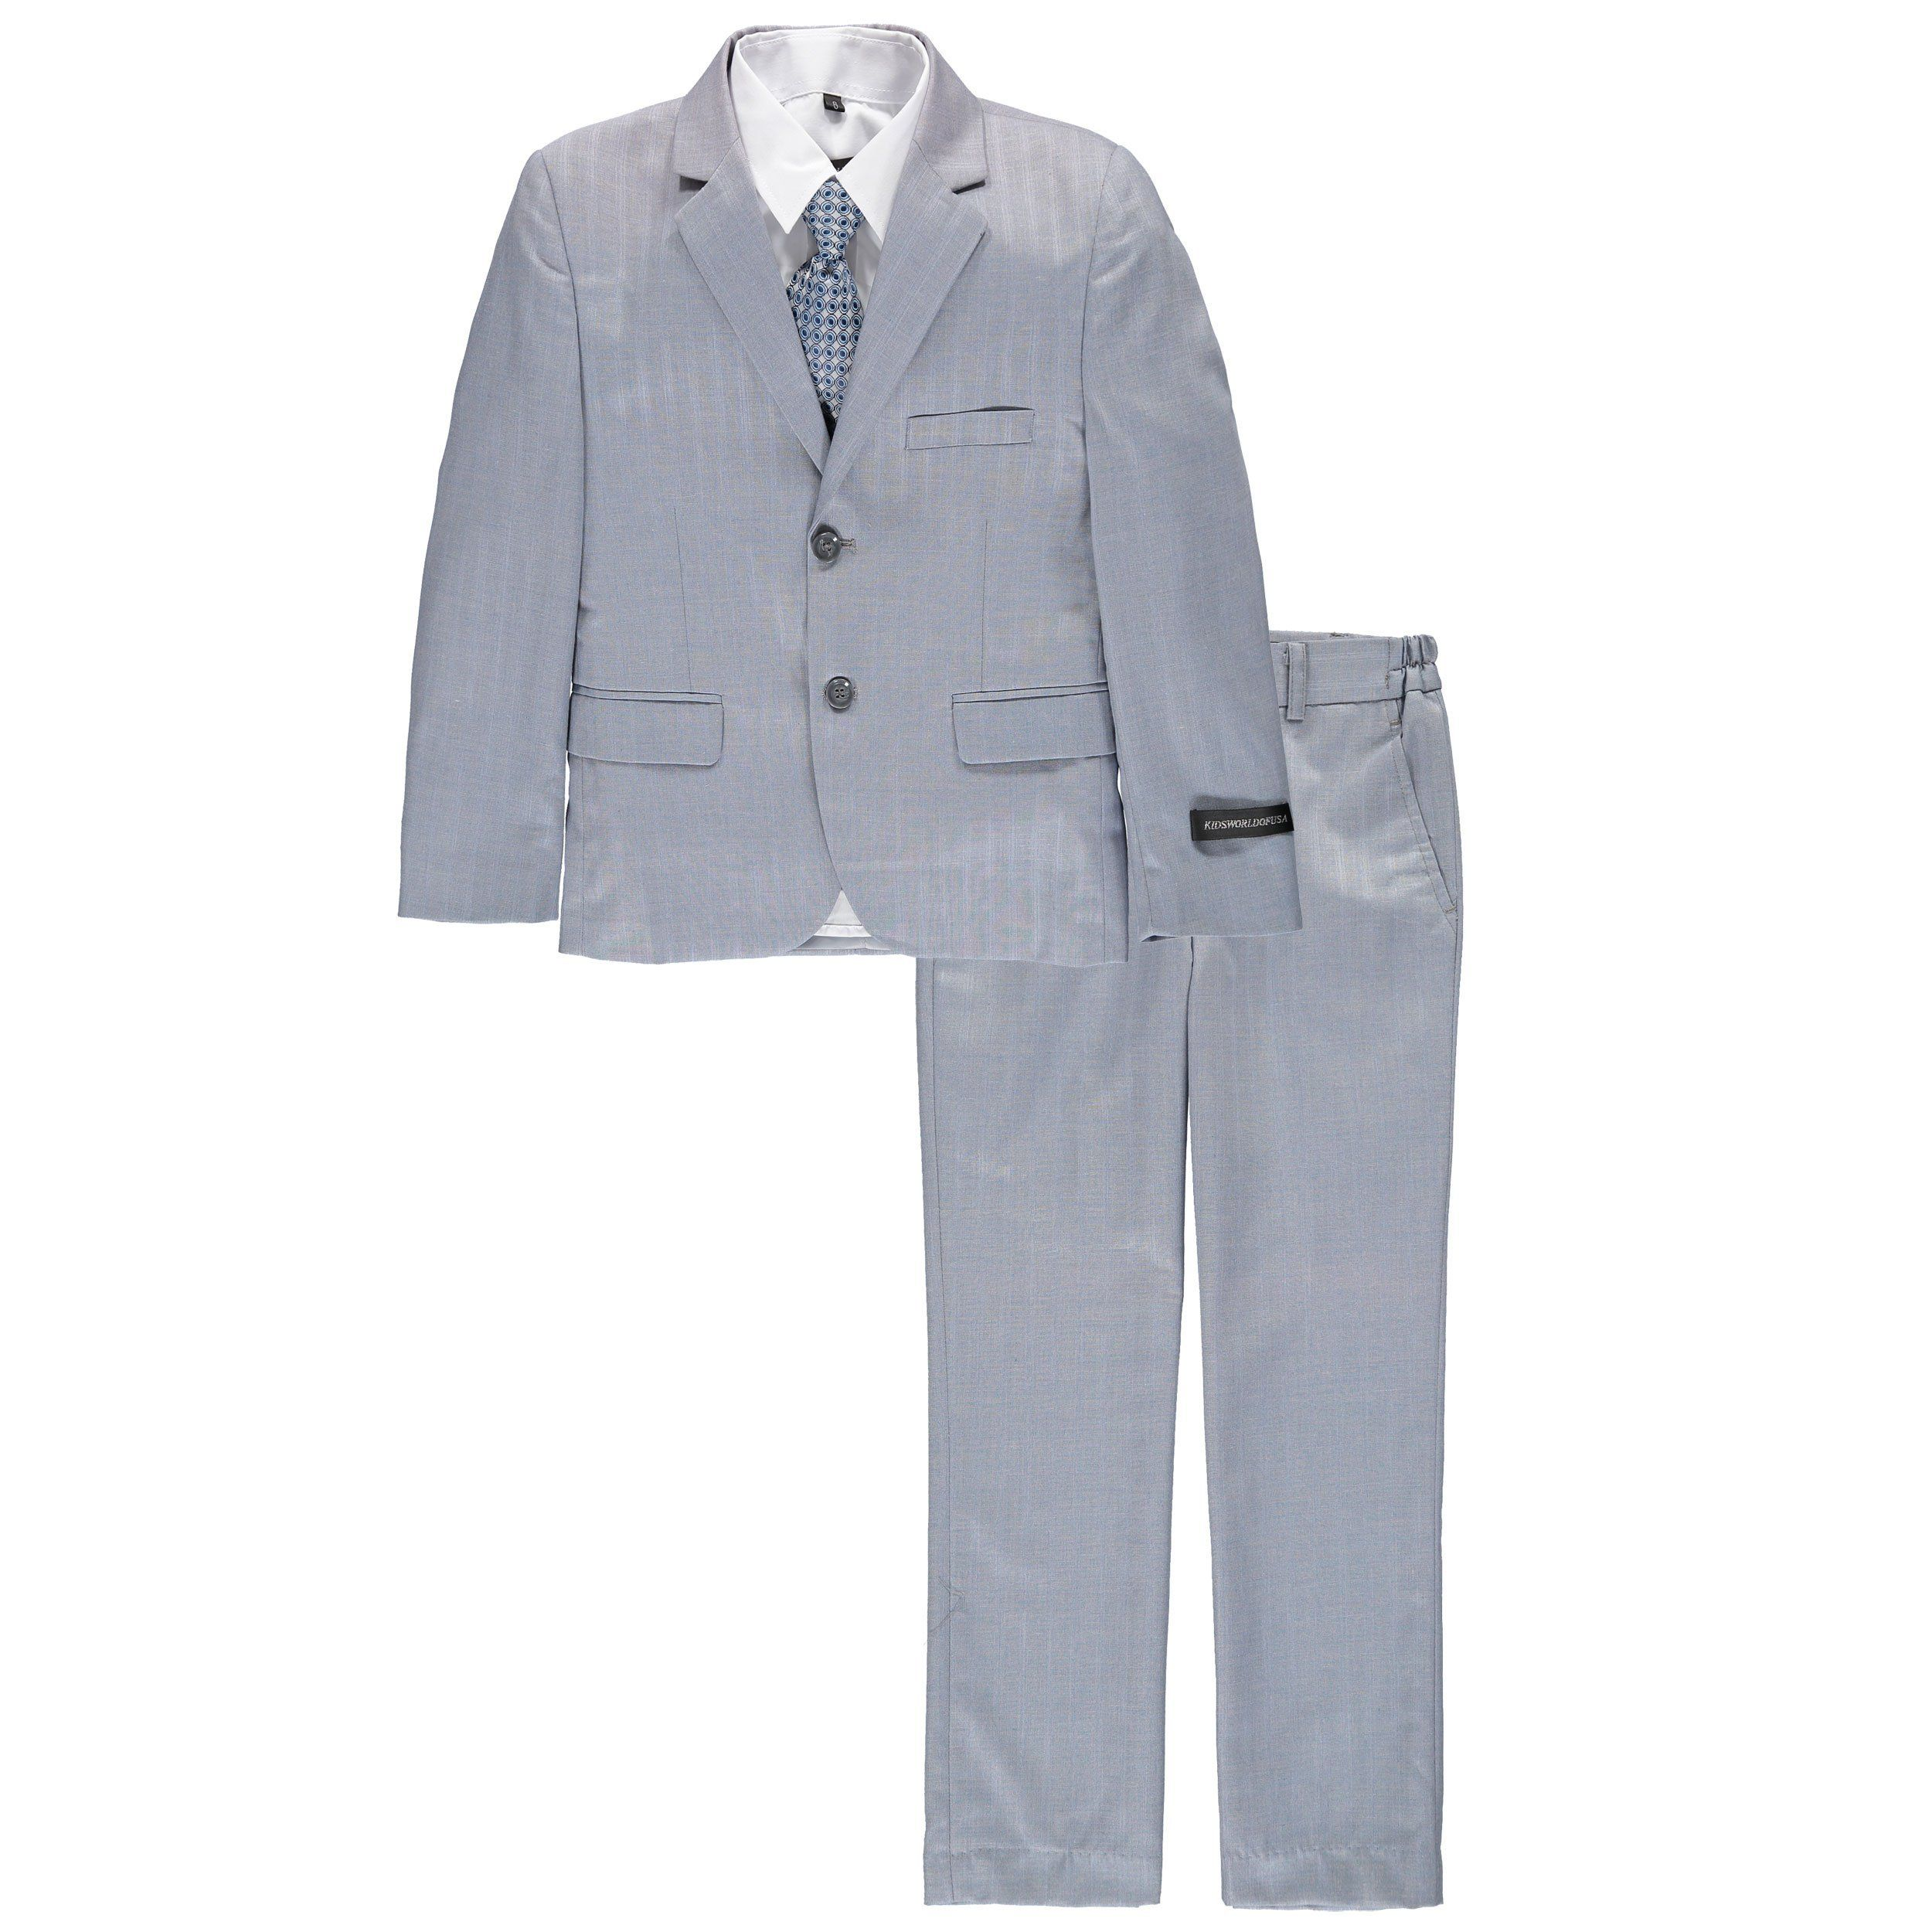 Kids world of usa boys piece texture grey suit includes